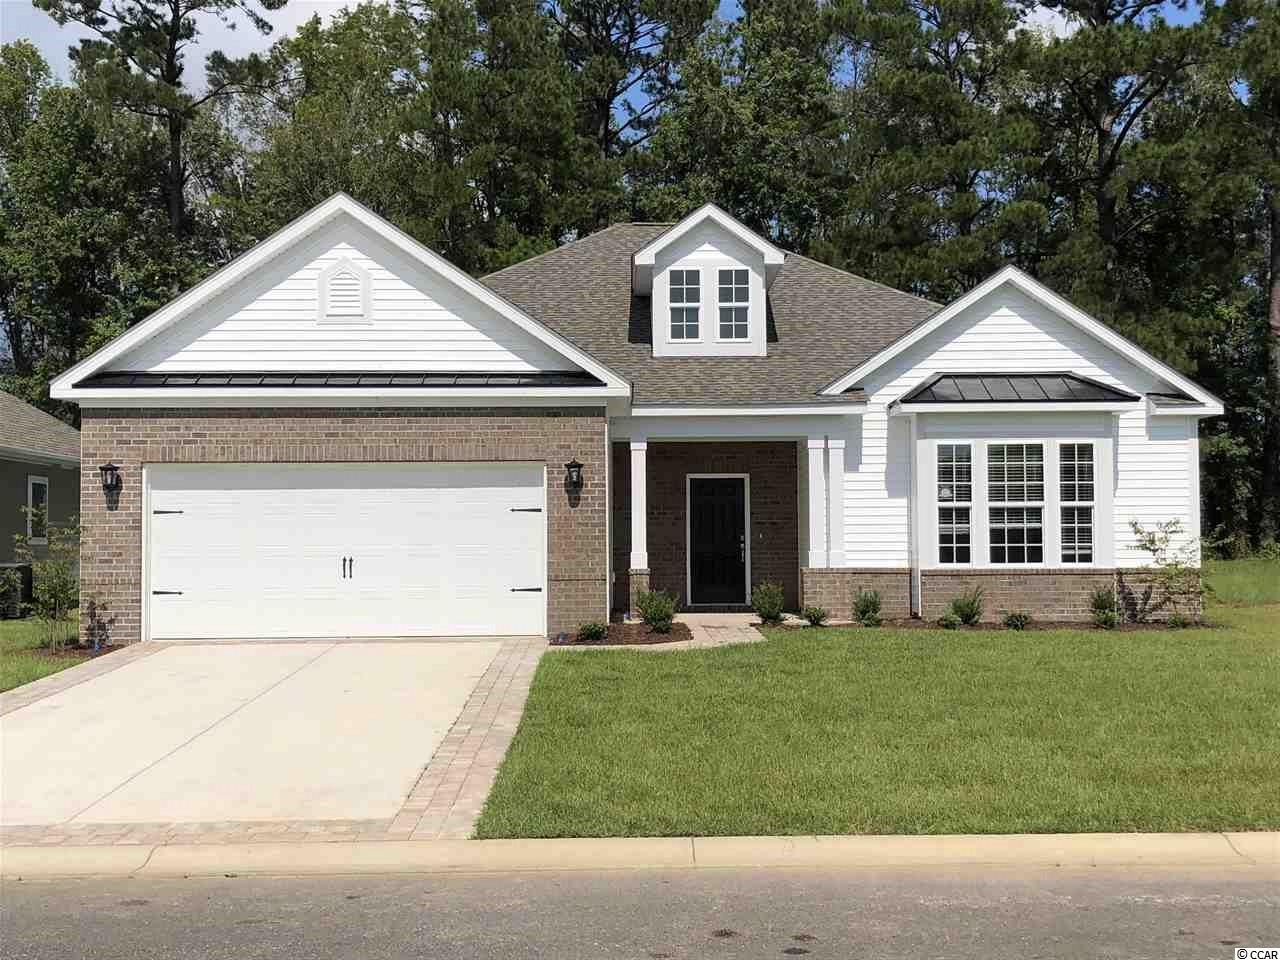 This beautiful 4 Bedroom 3 Full Bath home is ready to move in.  Hardwood Flooring in all the Bedrooms and Living Areas. Tile in the Bathrooms and Laundry Room. Upgraded Home Office Space in the Great Room.  Covered Porch overlooking a very private wooded backyard.